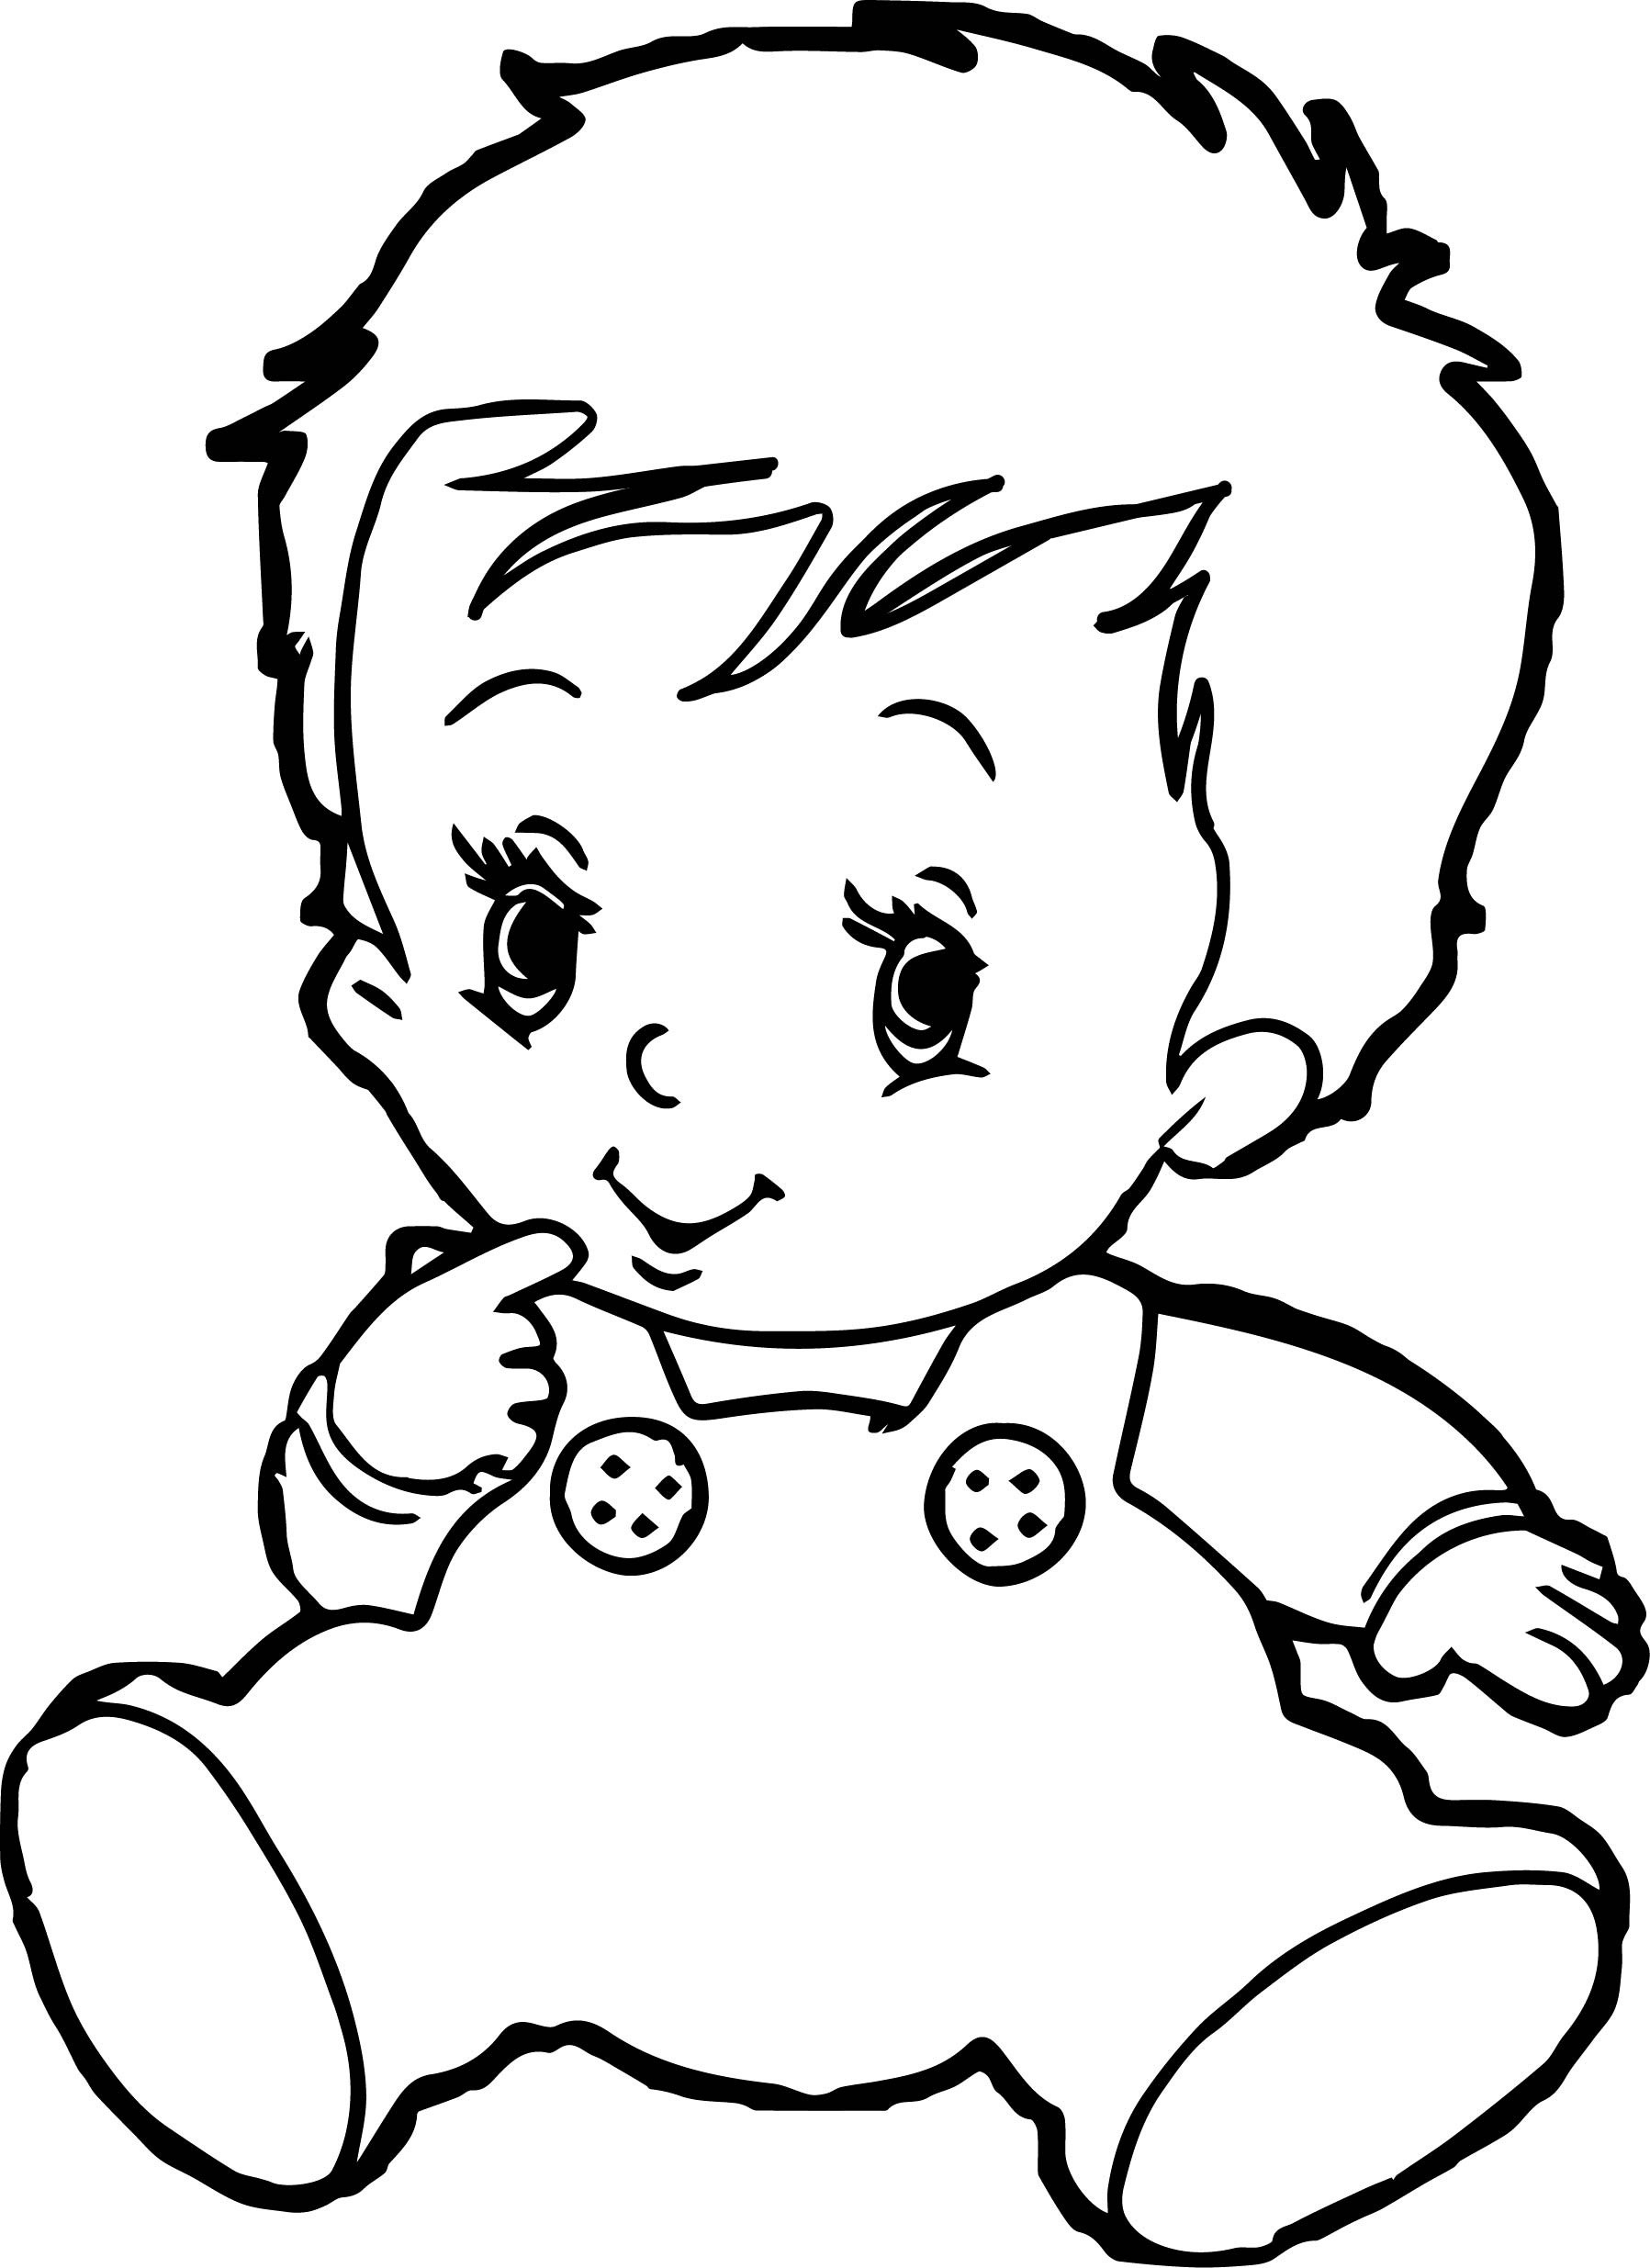 cute newborn baby baby coloring pages free printable baby coloring pages for kids baby newborn baby cute pages coloring